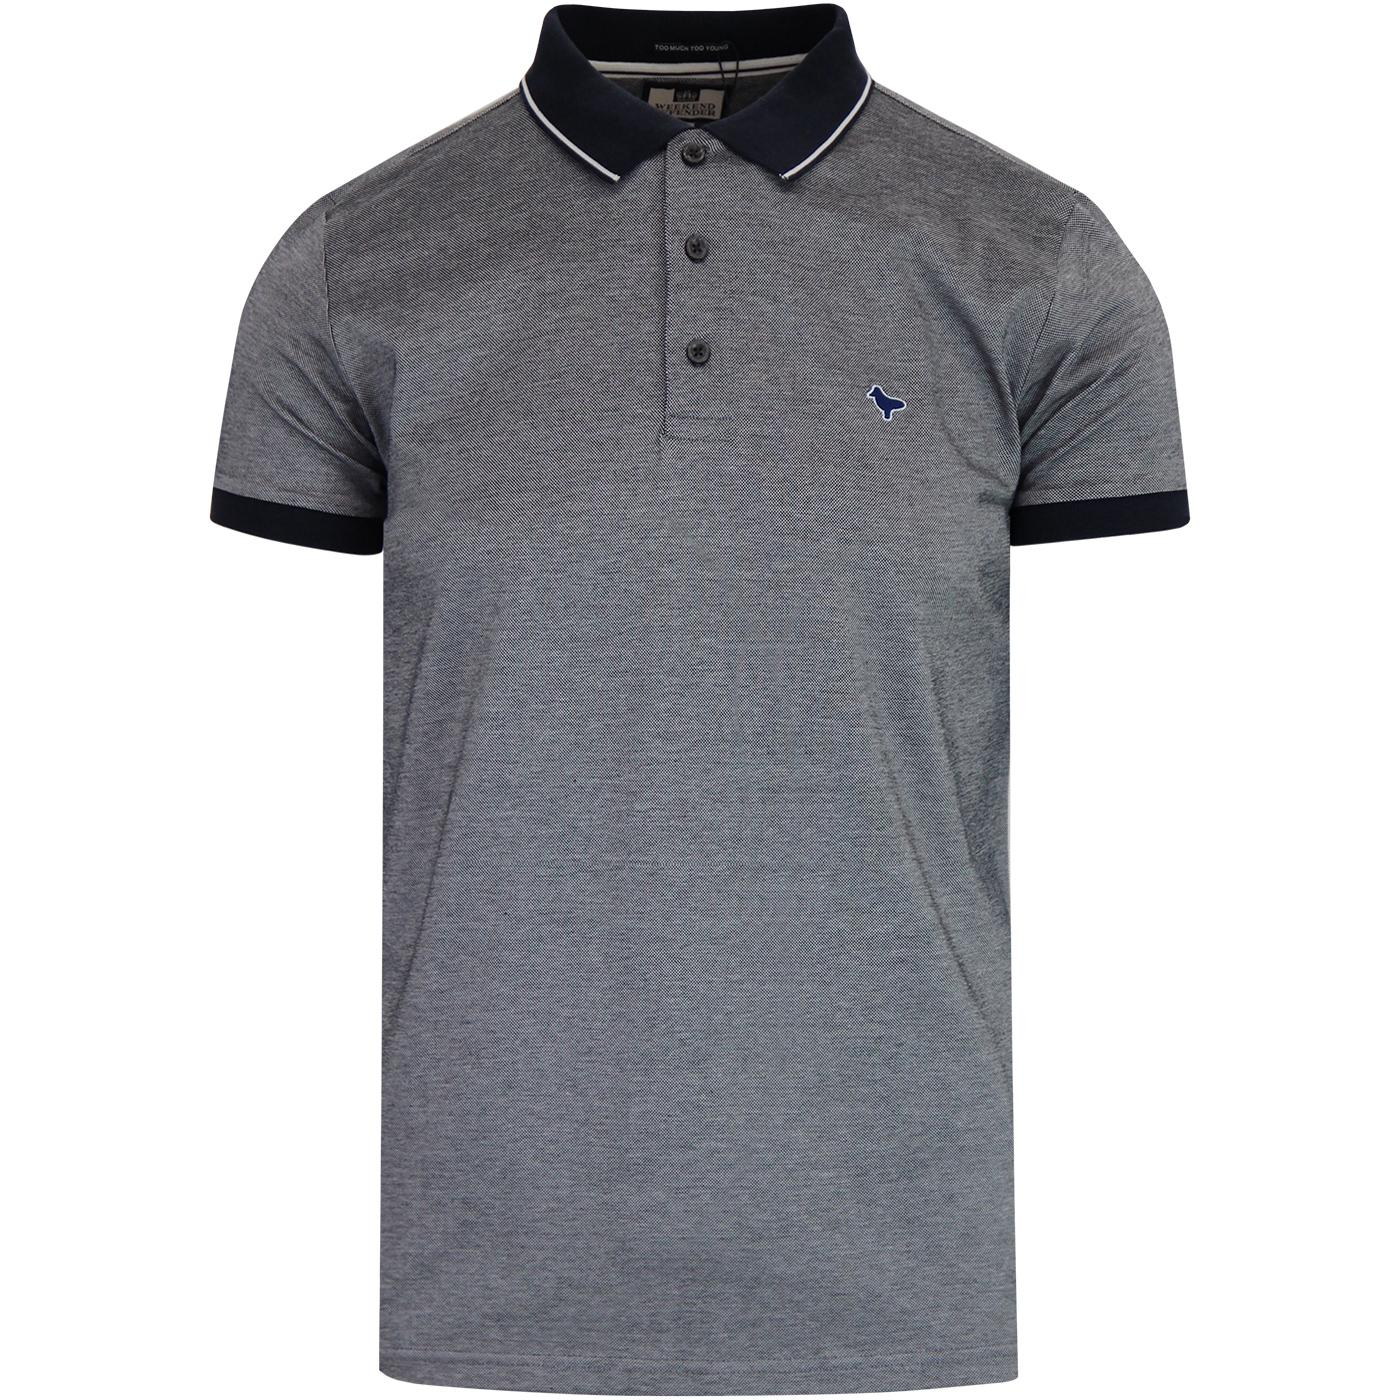 Dell Anna WEEKEND OFFENDER Mod Polo Shirt (Navy)